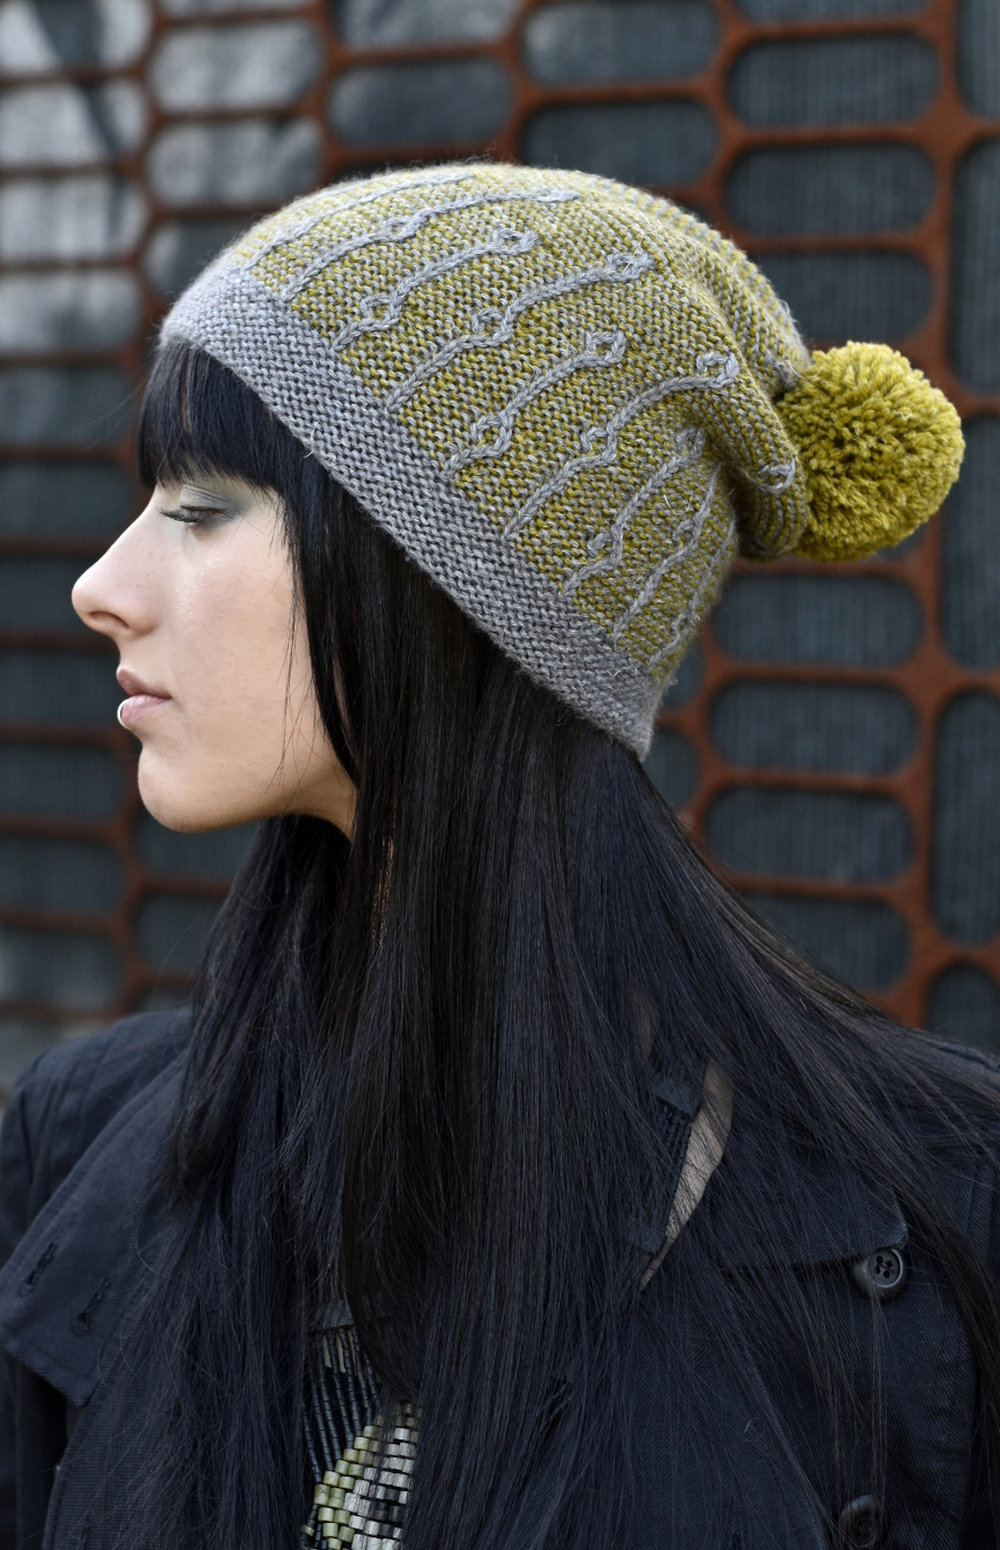 Joyce slipped stitch slouchy Hat hand knitting pattern